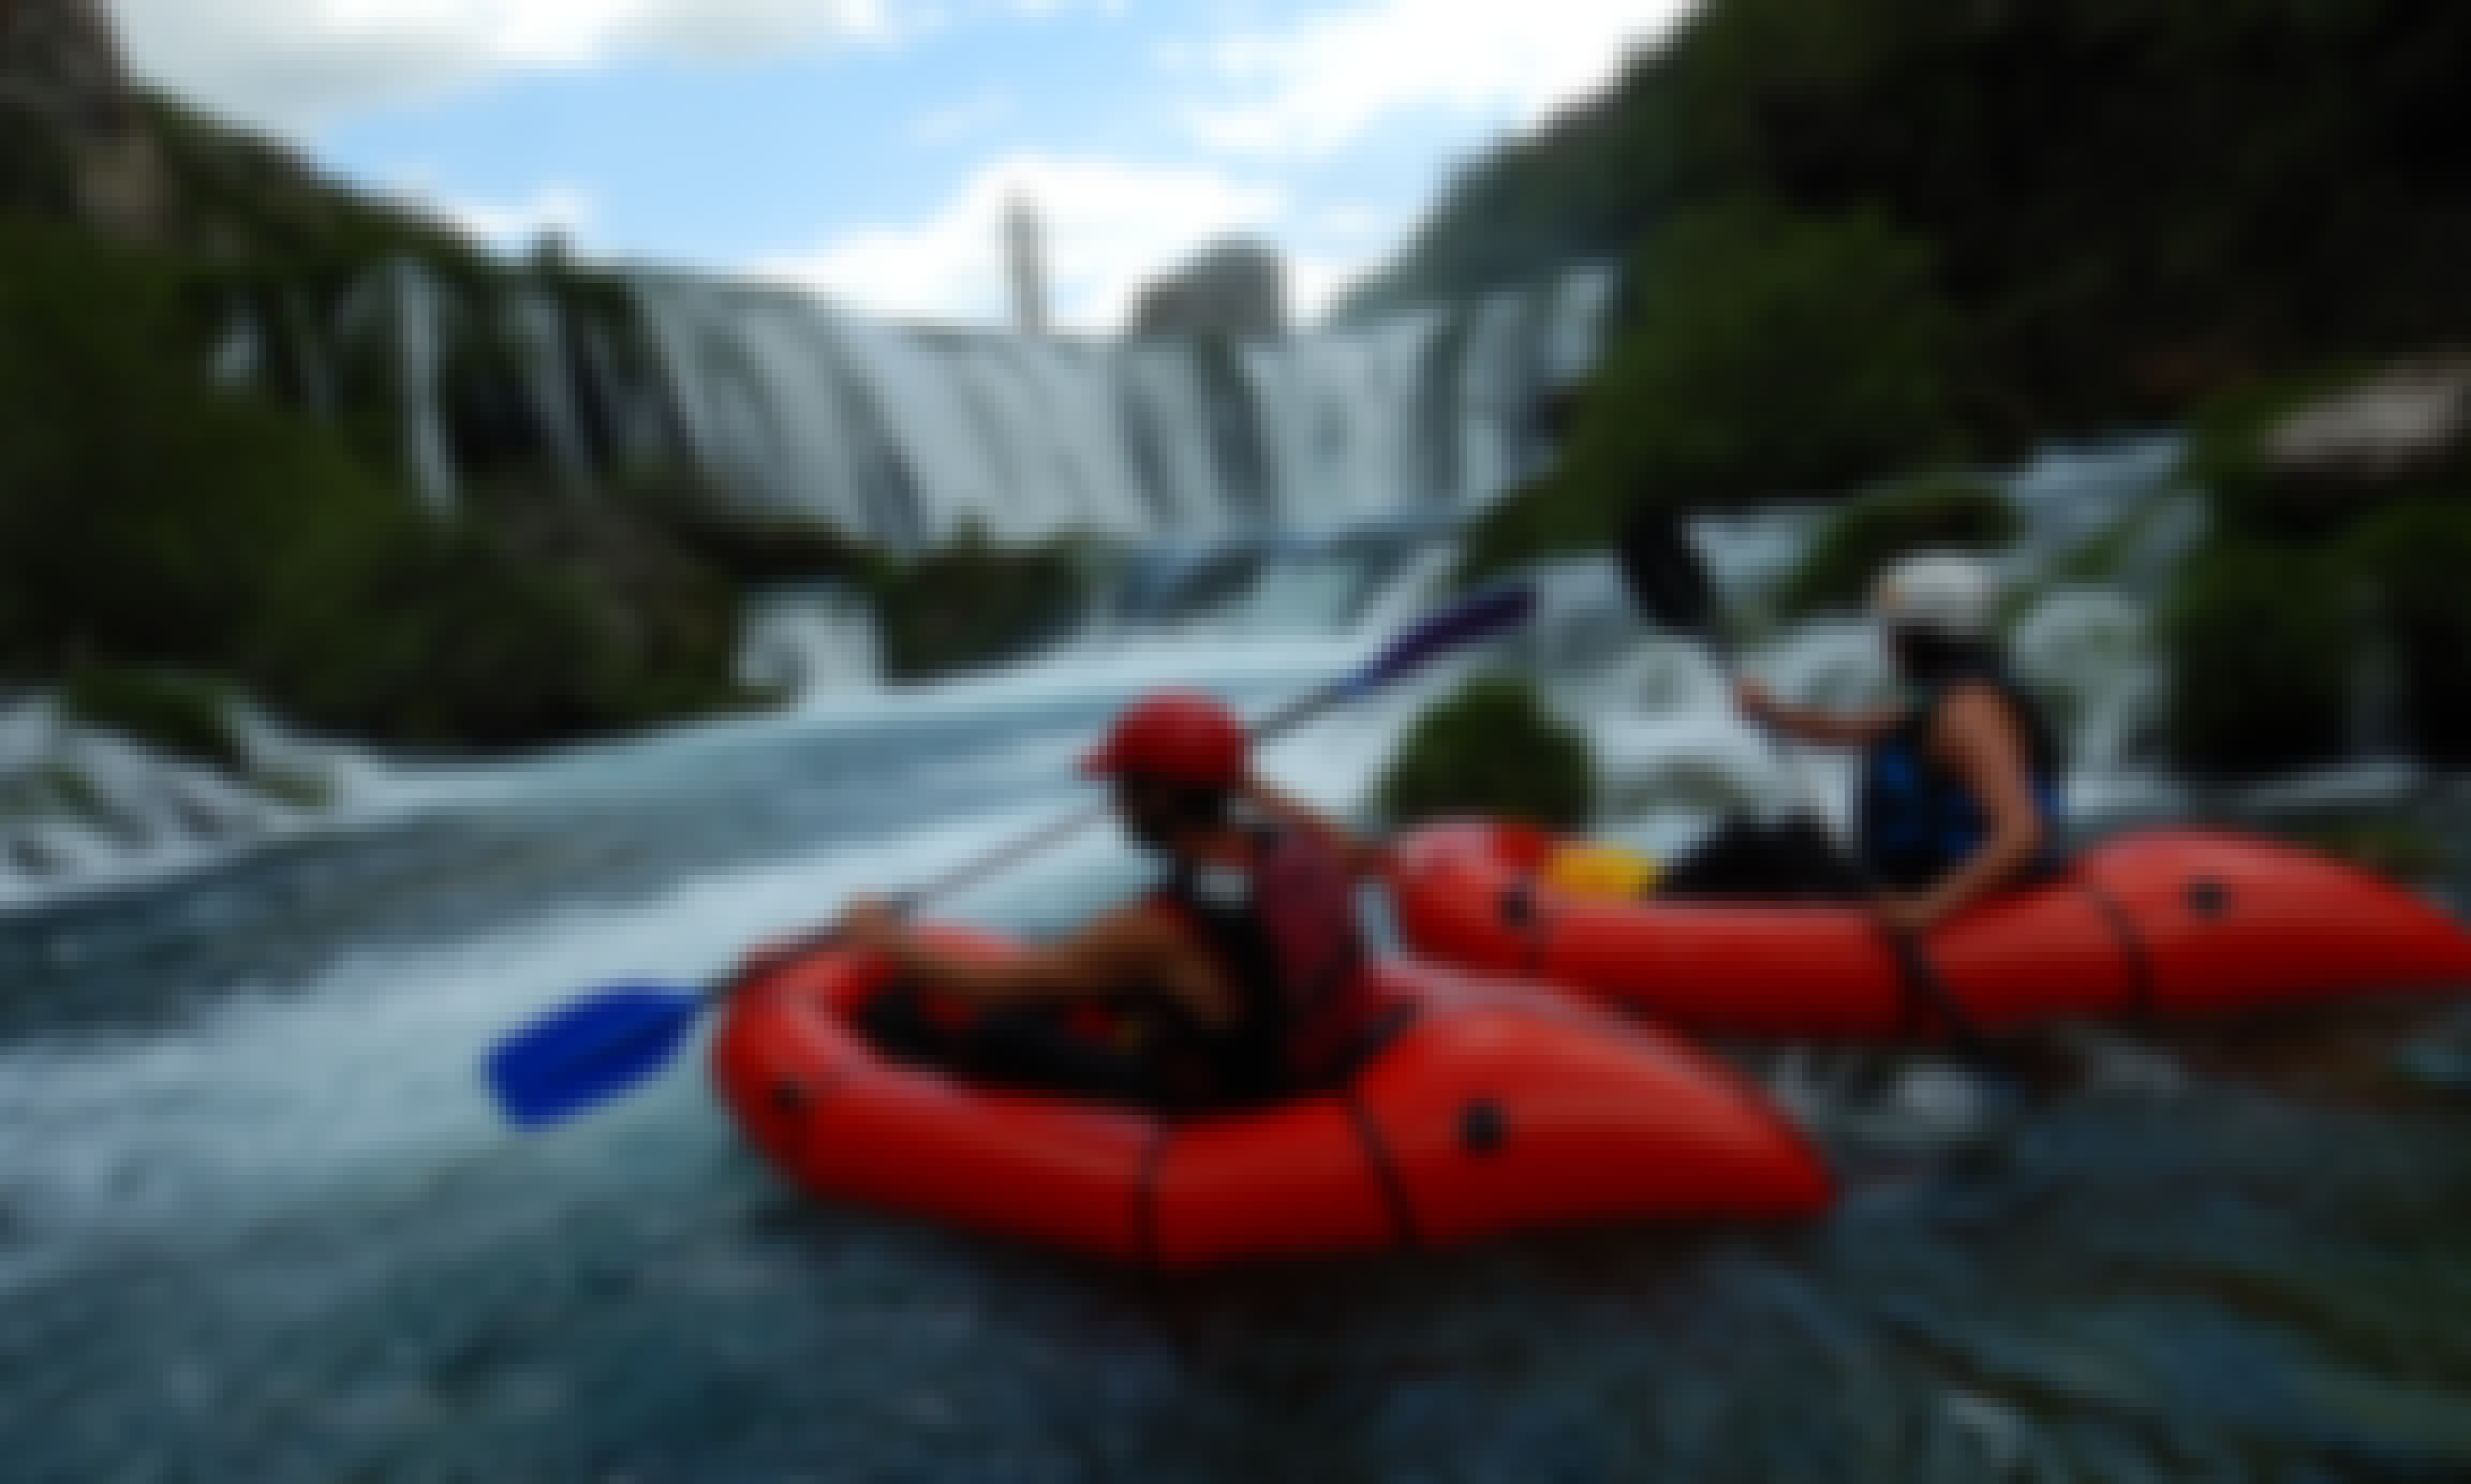 Guided Day Packrafting Experience on Zrmanja River